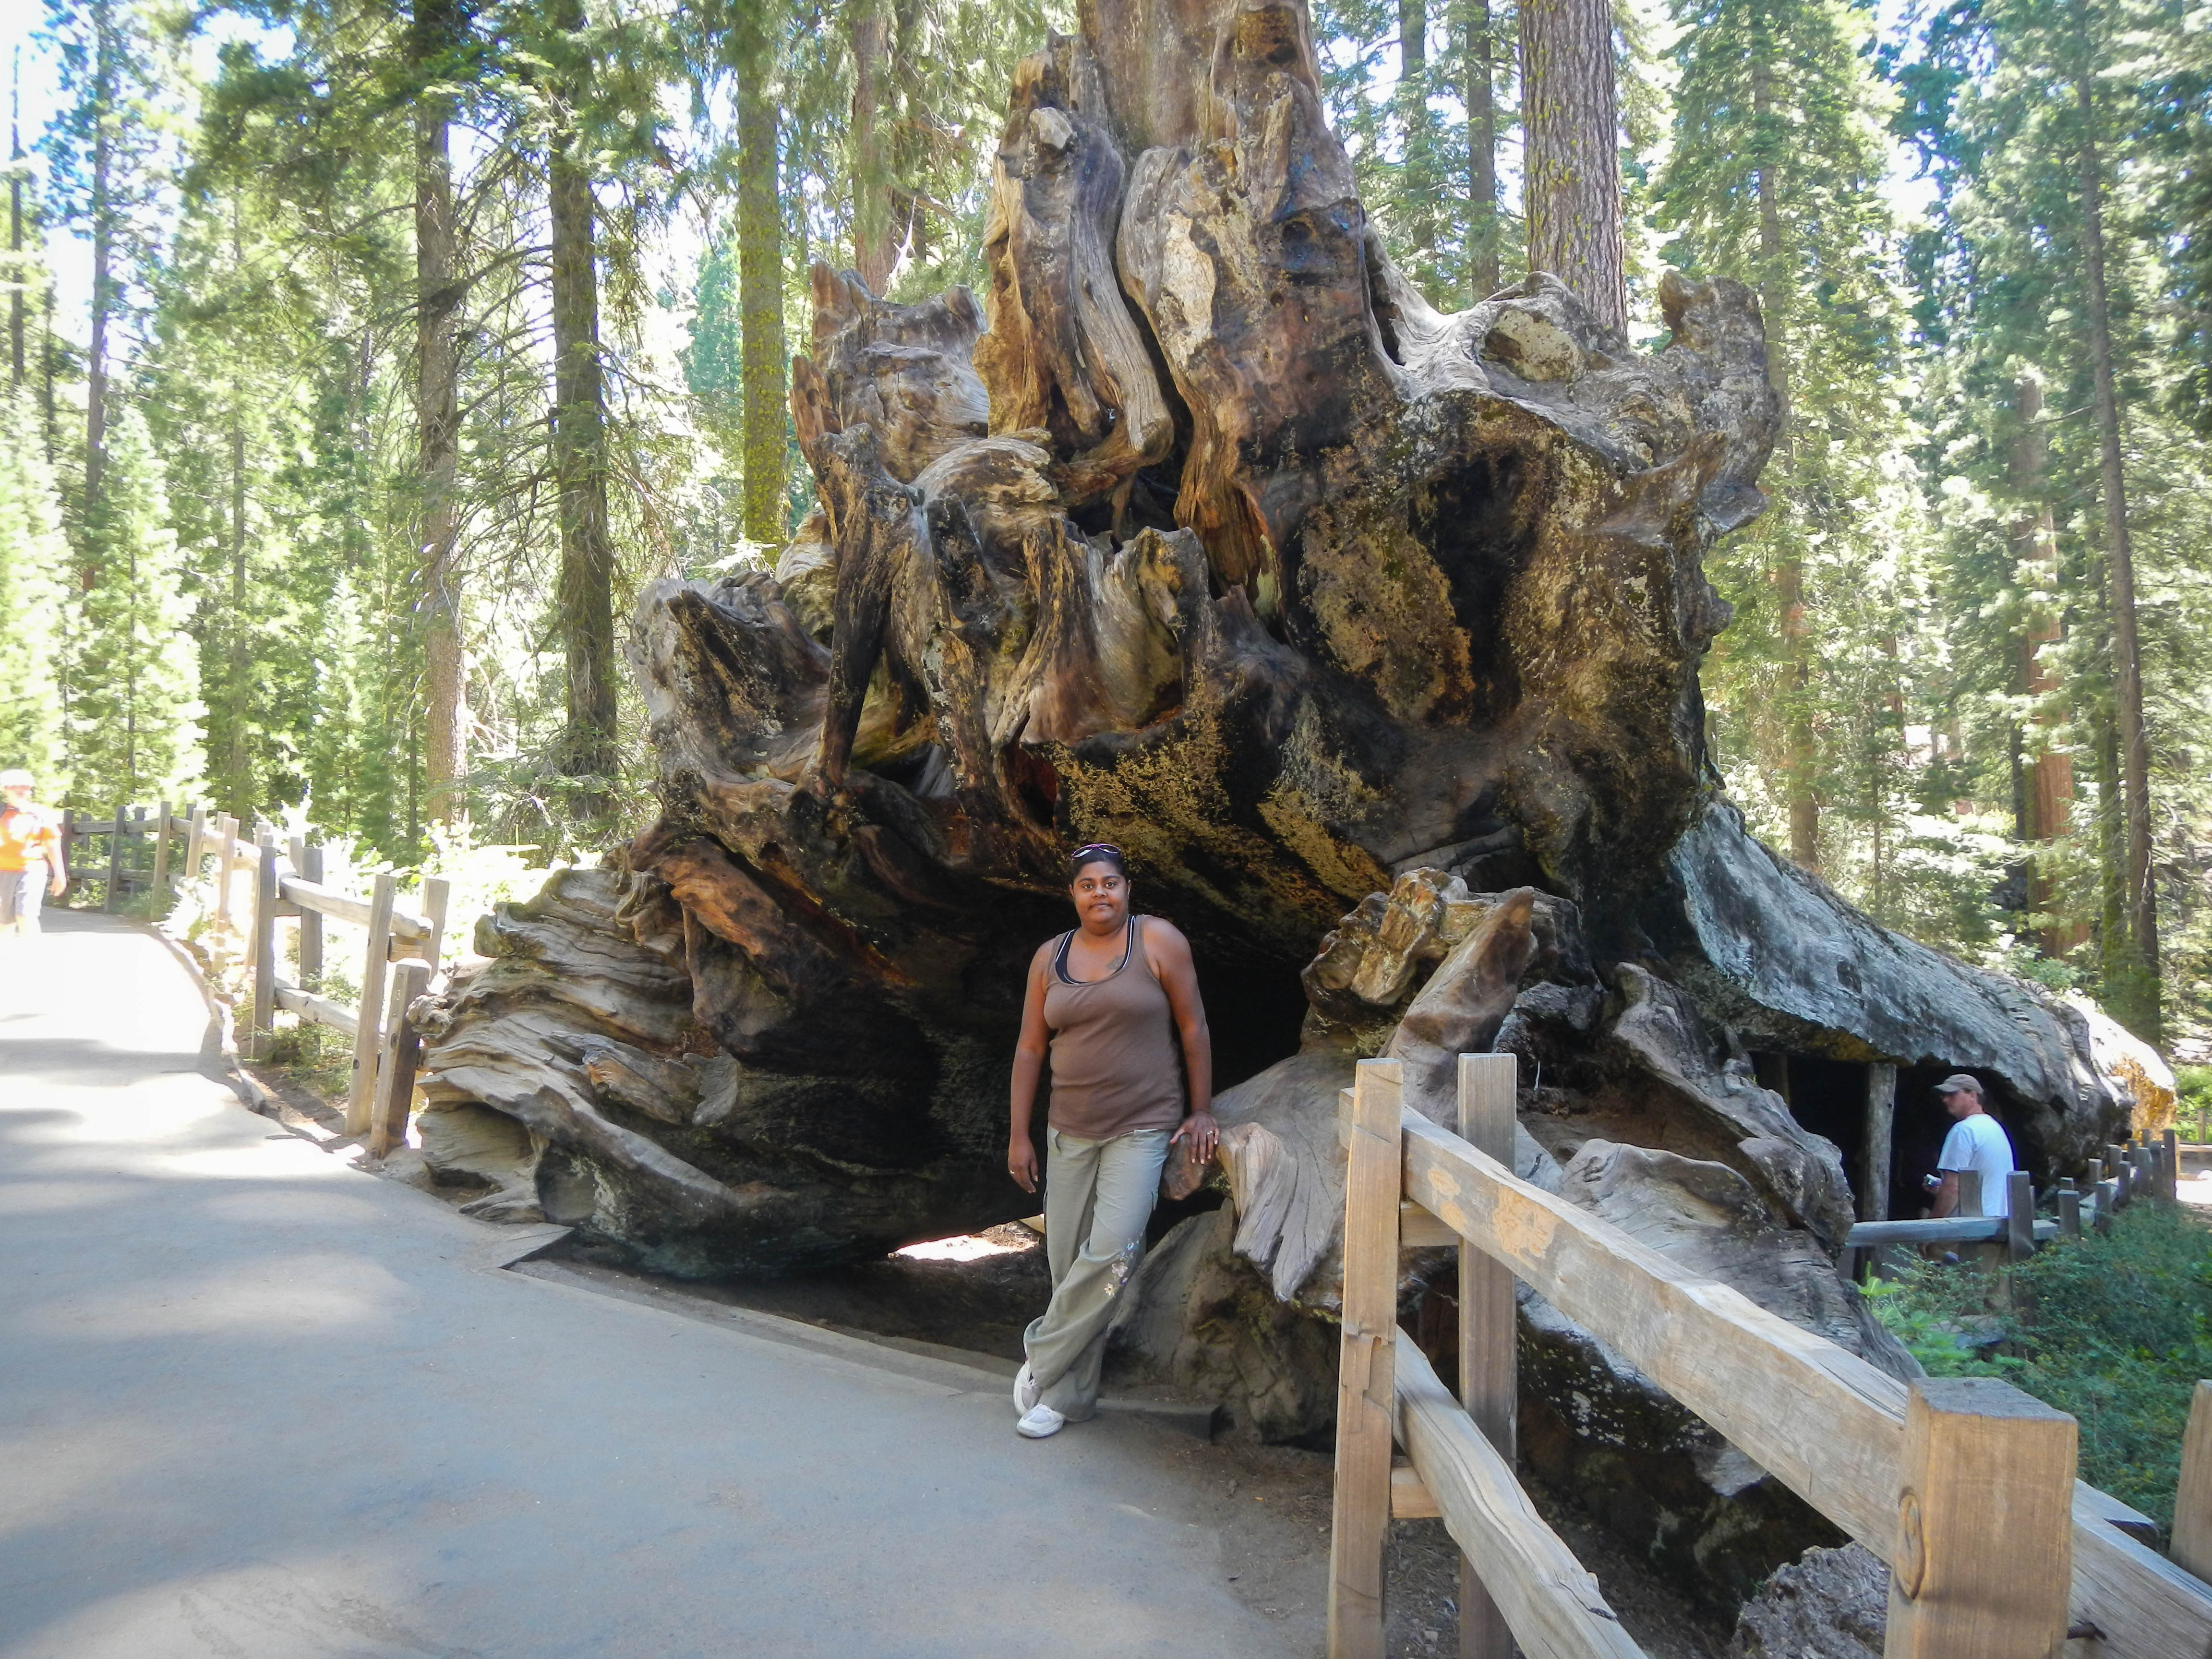 Kings Canyon National Park Guide Photo Essay